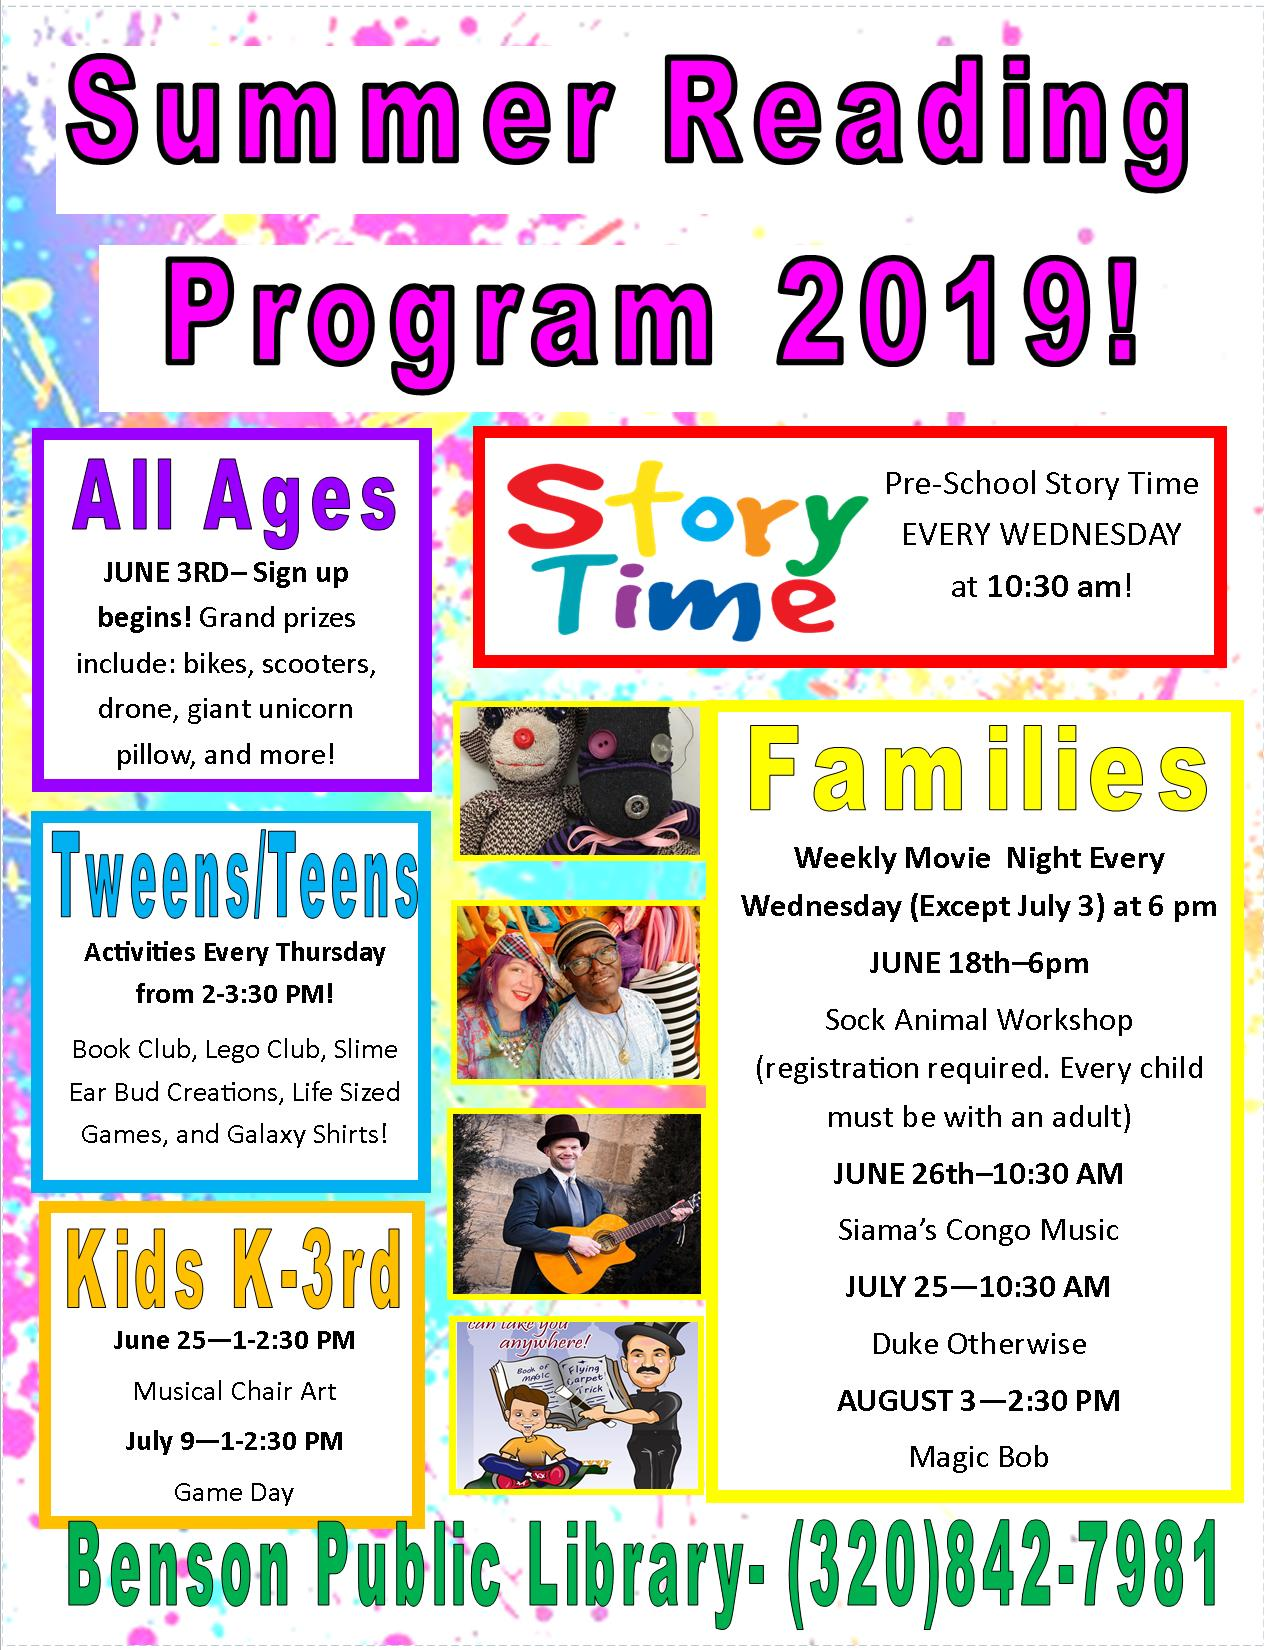 Benson Public Library's Summer Reading Program begins June 3rd and runs through August 3rd. Family activities include Sock Animal Creations (June 18, 6 pm), 4-H Fun Days (June 13 & July 18, 10 AM-12 PM), Siama's Congo Music (June 26, 10:30 AM), Story-Time with the Stingers (July 11, 10:30 AM), Duke Otherwise (July 25, 10:30 AM), and Magic Bob (August 3-2:45 PM.) We also have weekly Story Times, weekly movie nights, weekly tween/teen activities, and special K-3rd activities June 25 and July 9th.